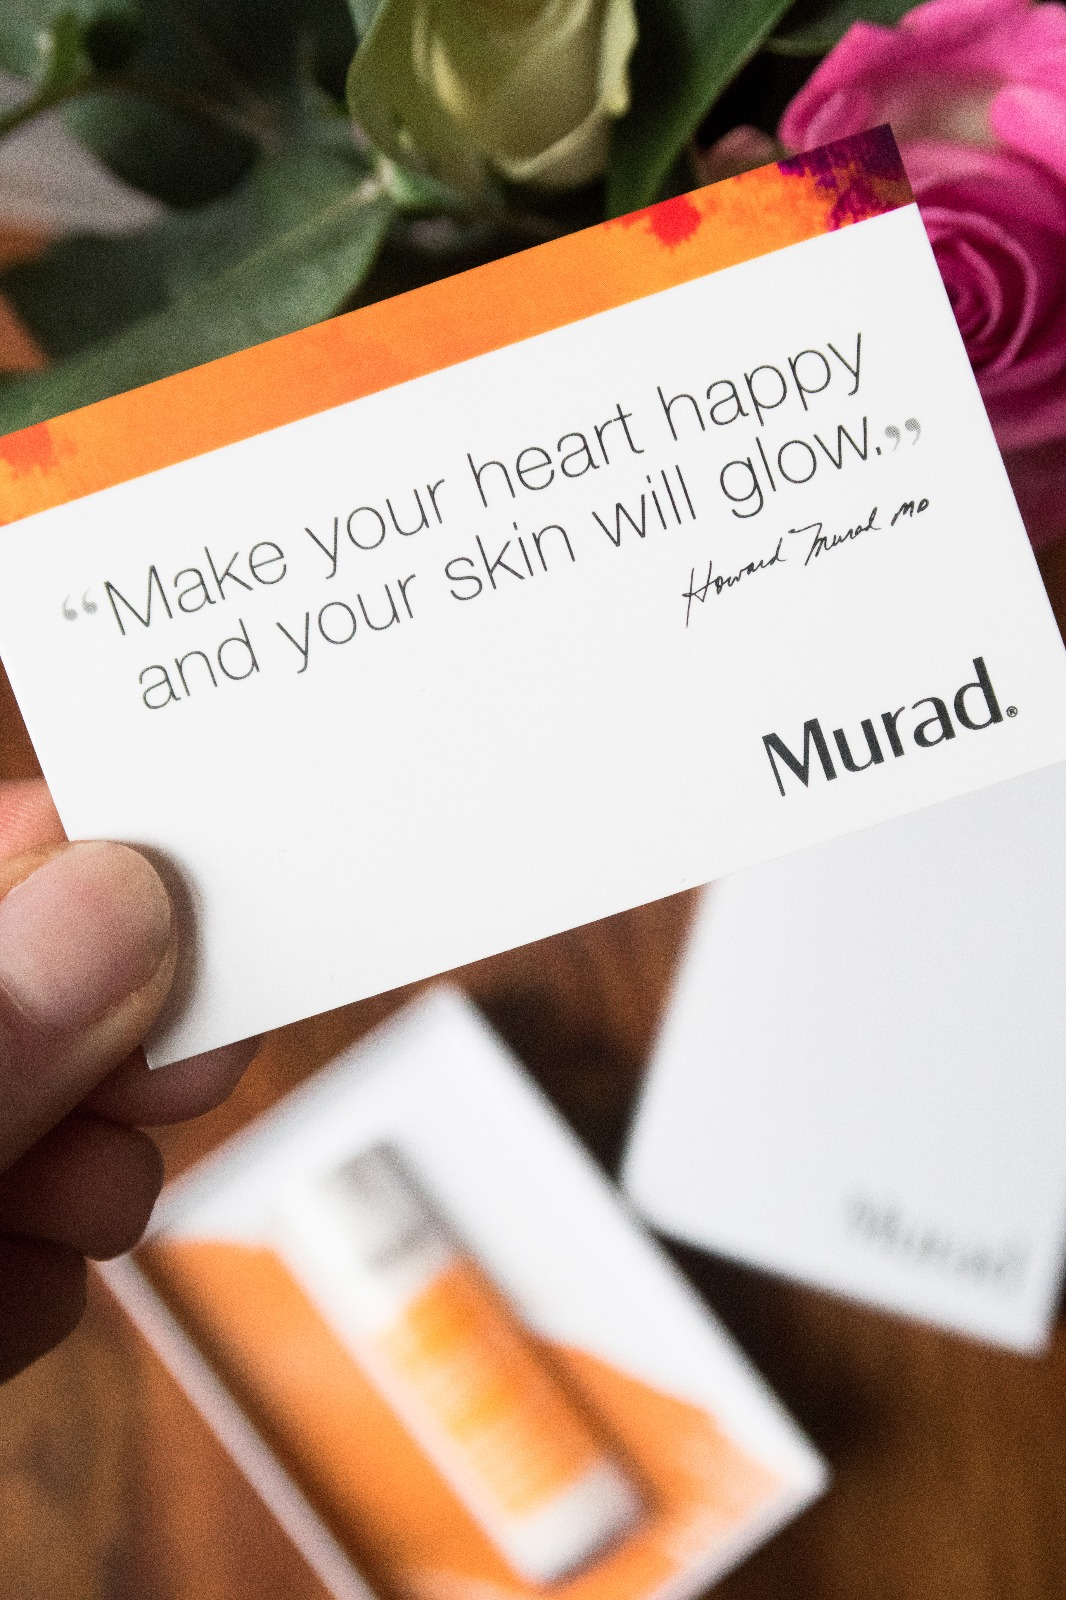 Murad Beauty Quote